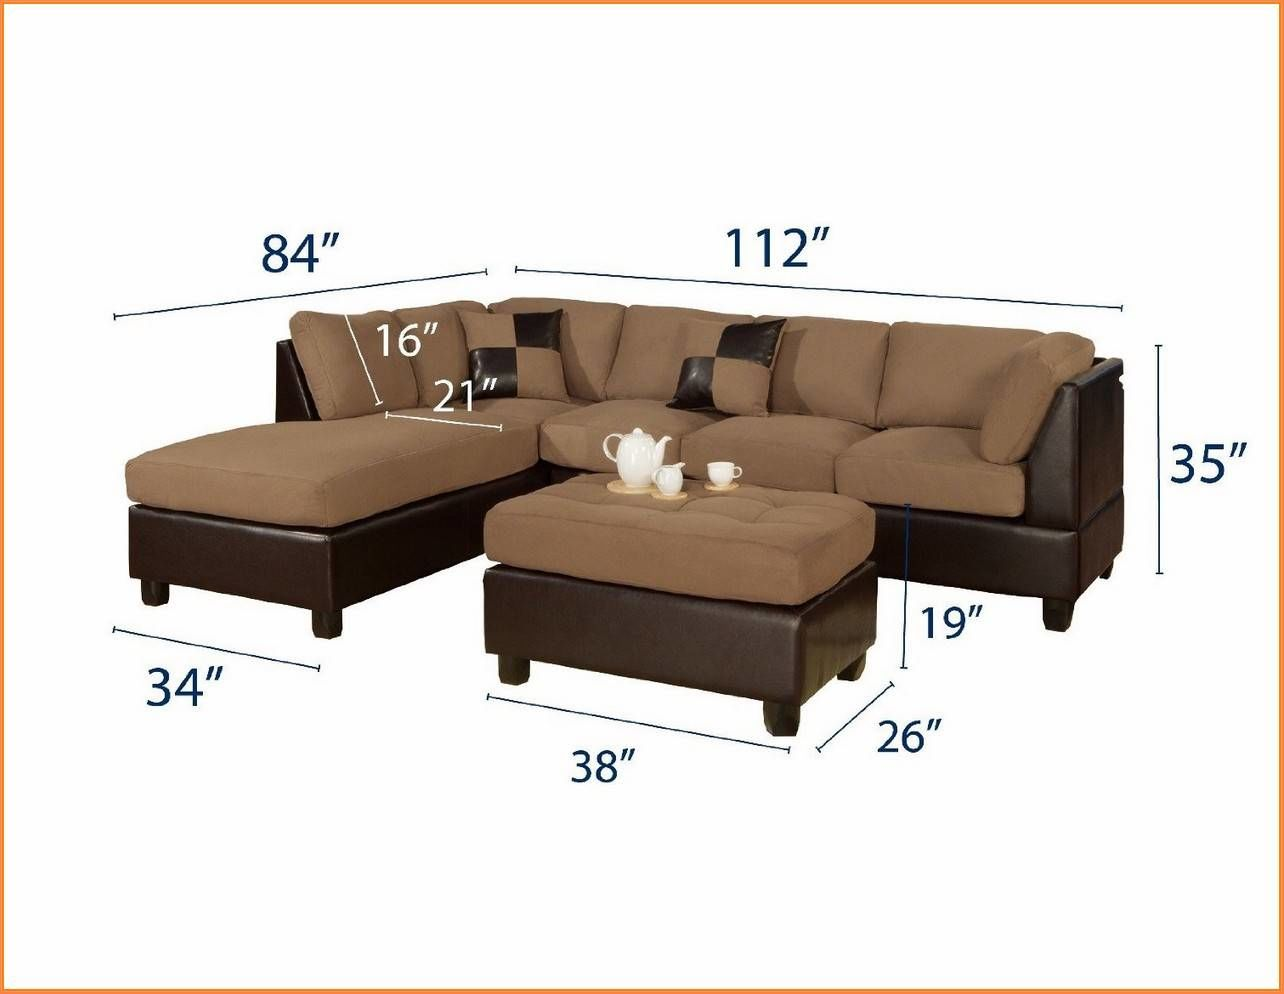 excellent leather sectional sofa with recliner collection-Cool Leather Sectional sofa with Recliner Design